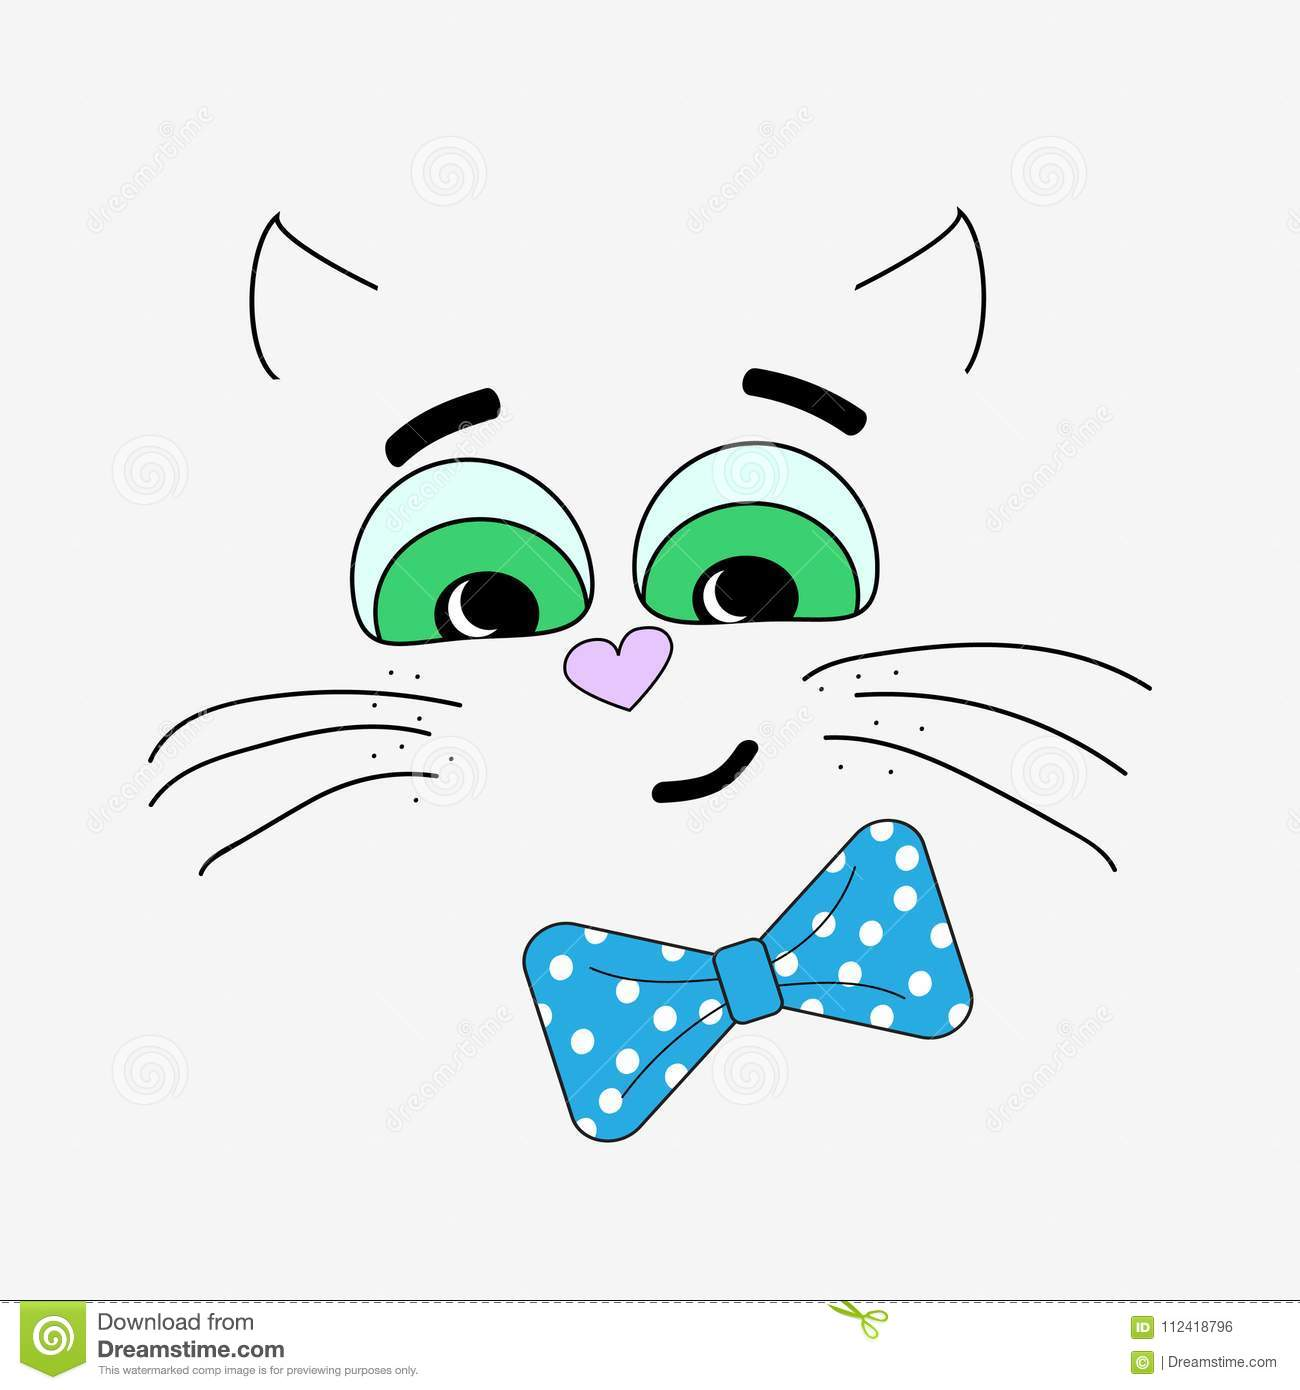 Vector Illustration With A Cat On A White Background The Template